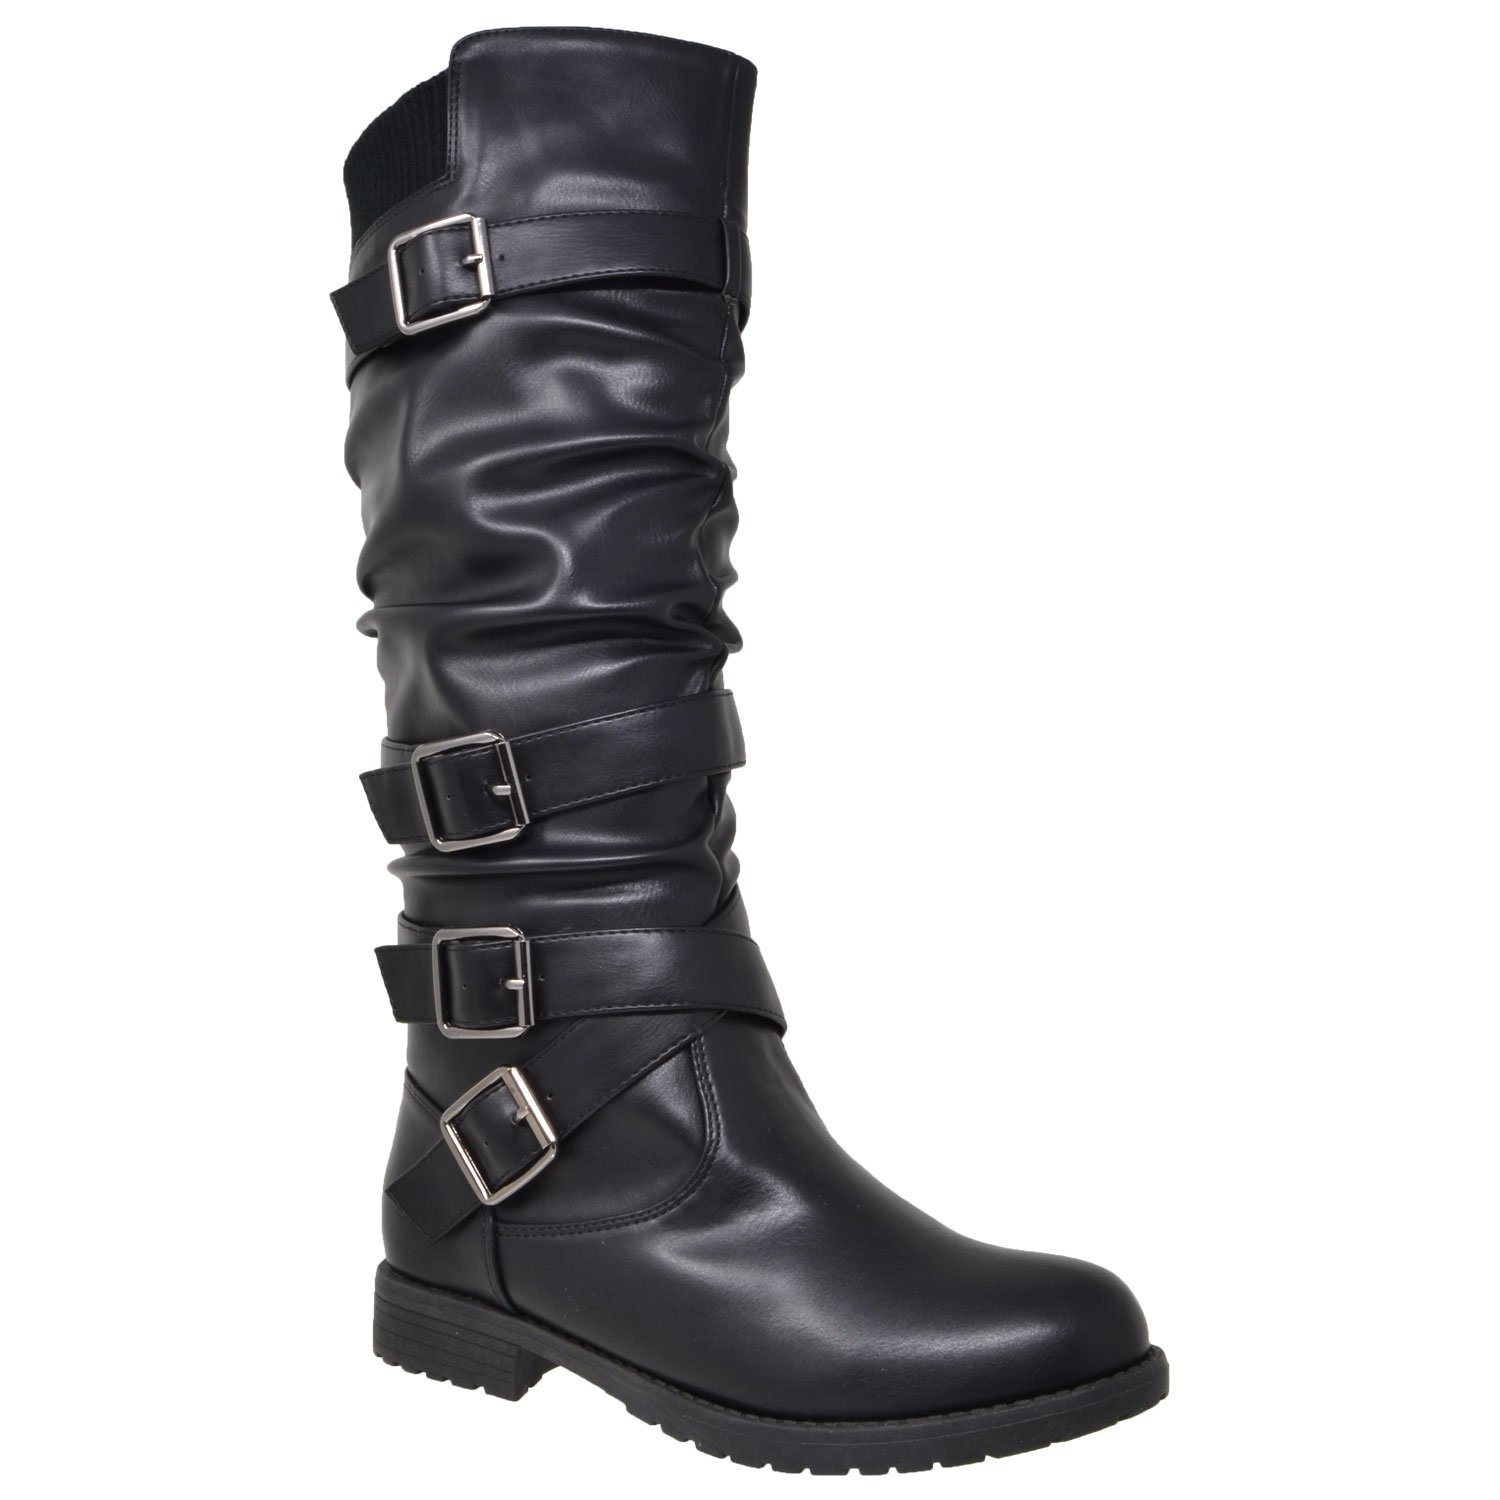 Generation Y Womens Knee High Boots Block Heel Strappy Slouchy Faux Leather Adjustable Buckles Black SZ 8.5